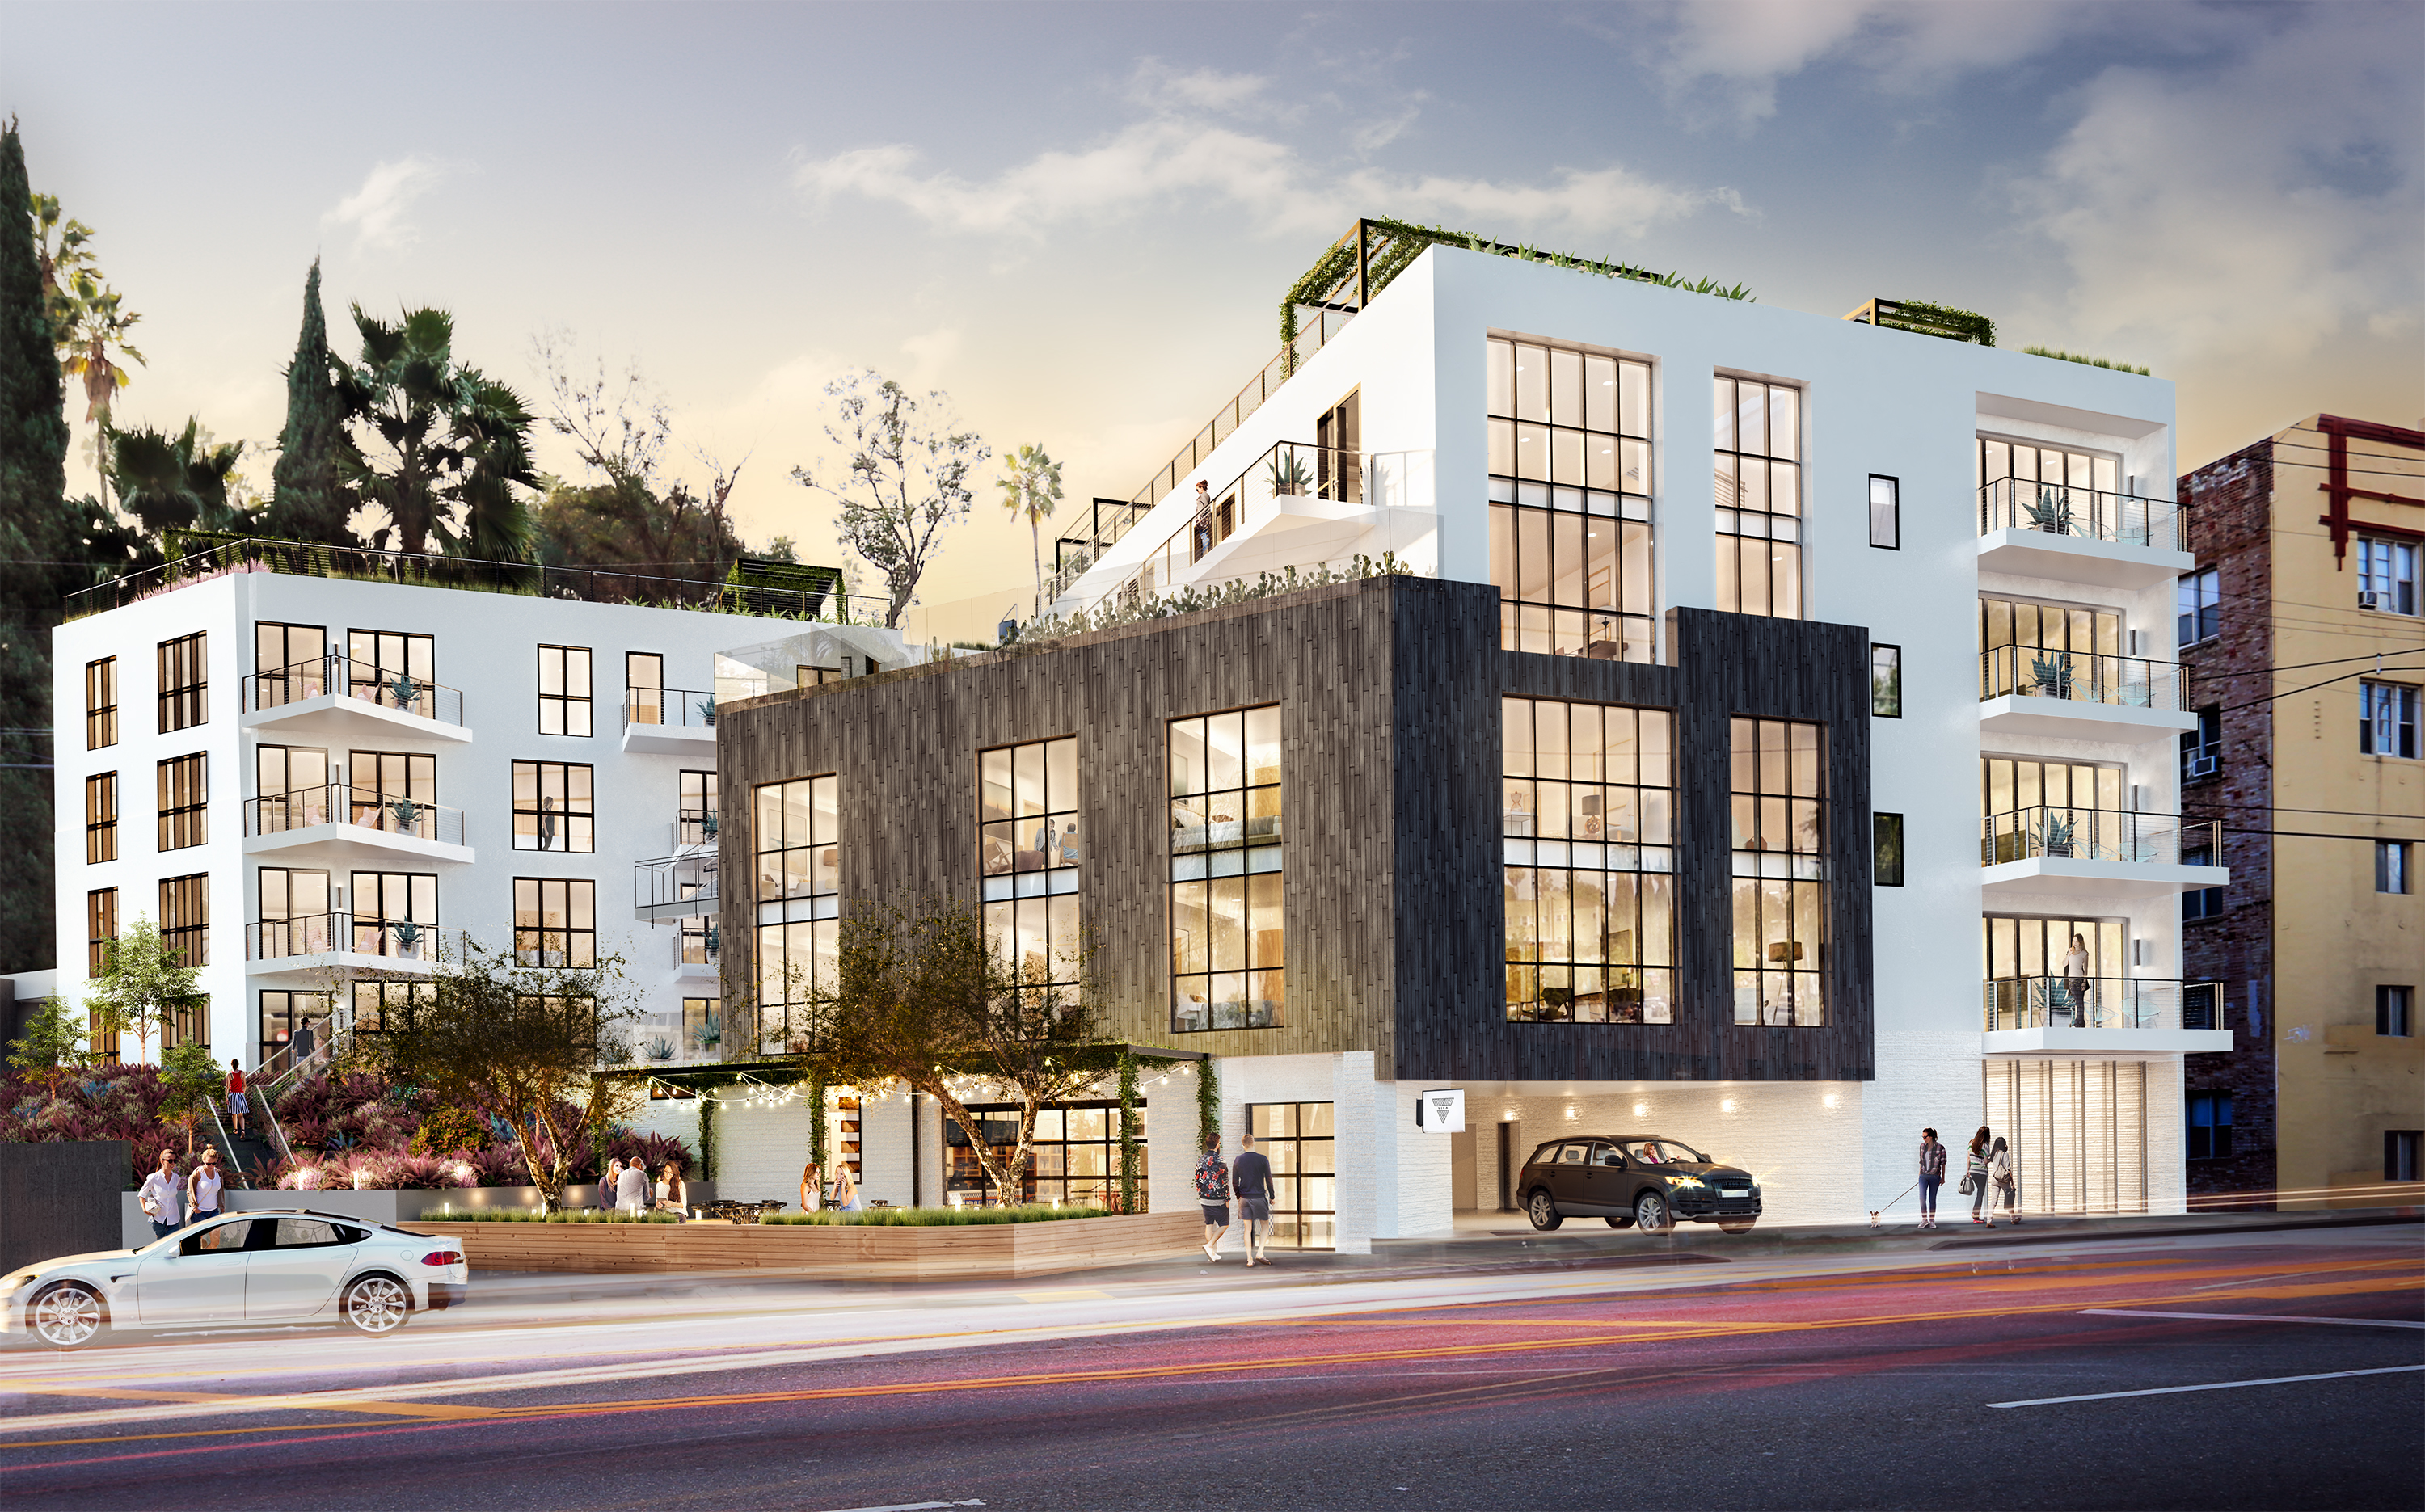 Attractive First Look At Silver Lake Condos Headed For Sunset Boulevard